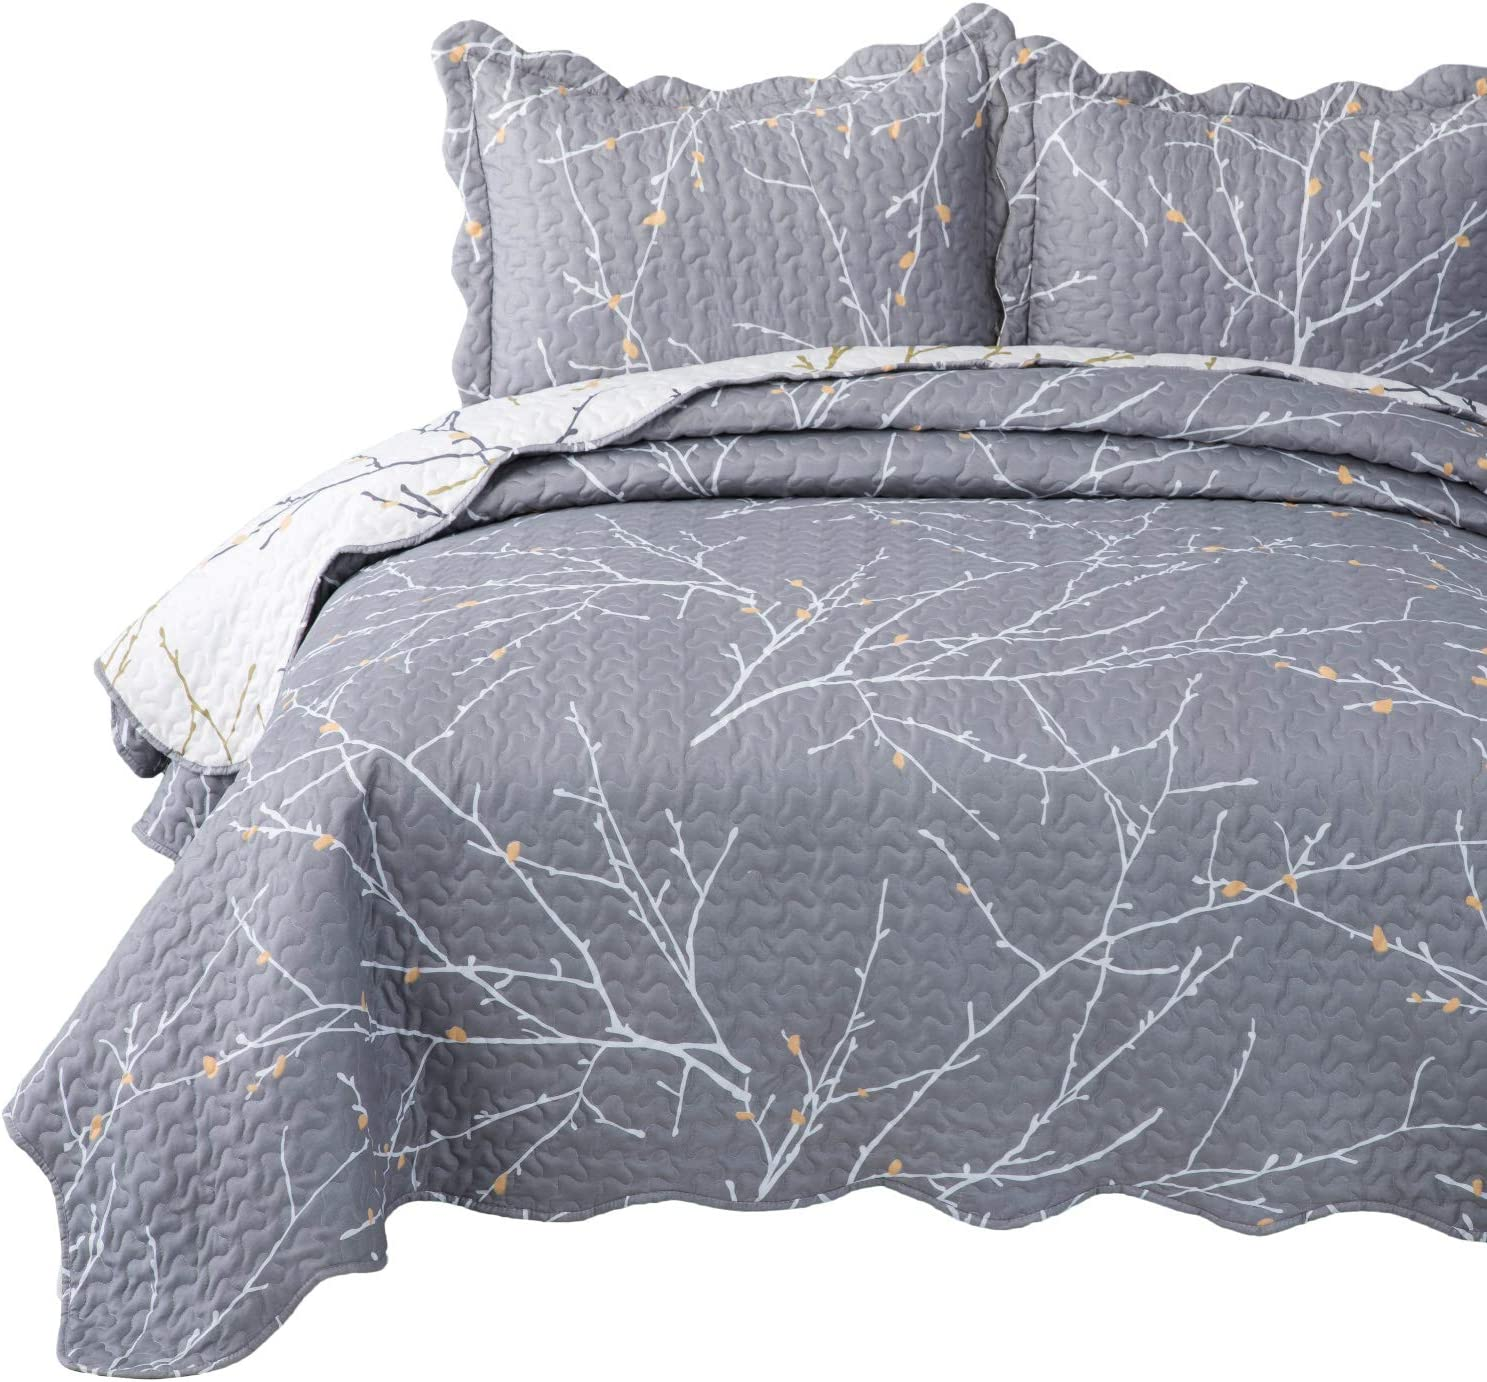 Bedsure Quilt Set Full/Queen Size(90x96 inches) - Tree Branch Floral Pattern - Lightweight Microfiber Bedspread Coverlet Quilt for Spring and Summer, 1 Quilt and 2 Pillow Shams - Grey/Ivory